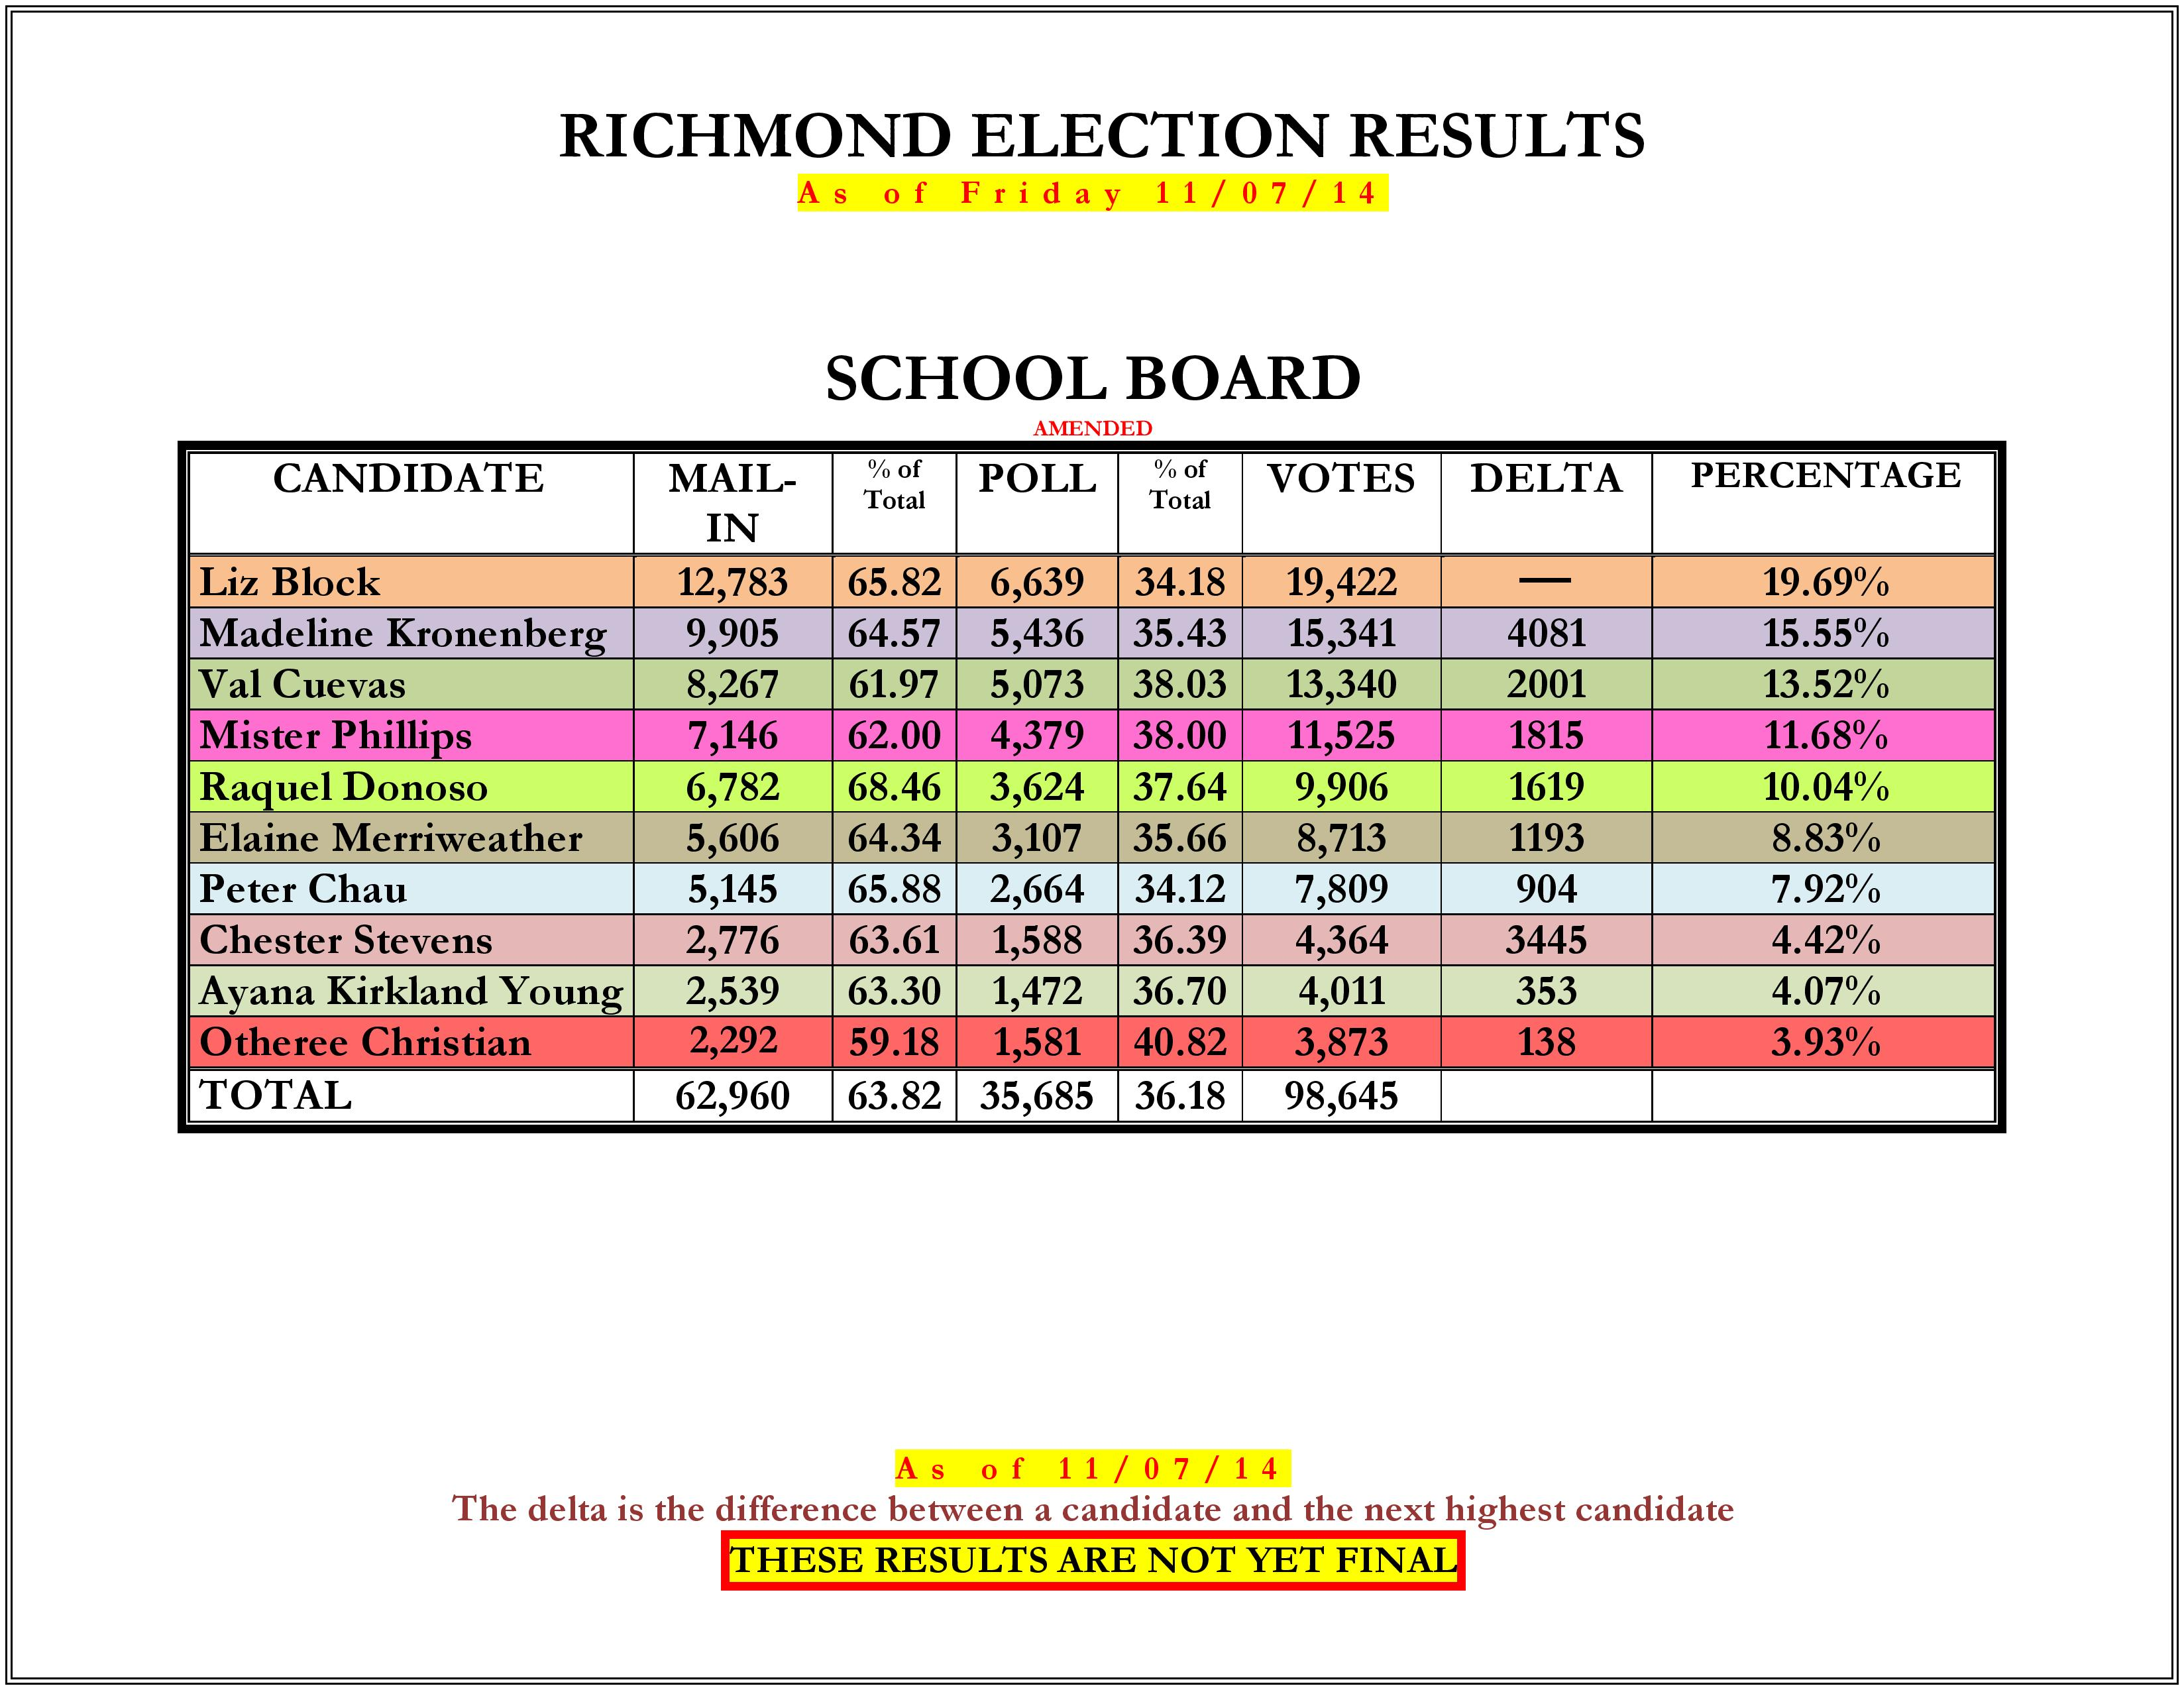 14_Richmond_Election_Results-2_11-07-14_Amended_Part3-page-001.jpg